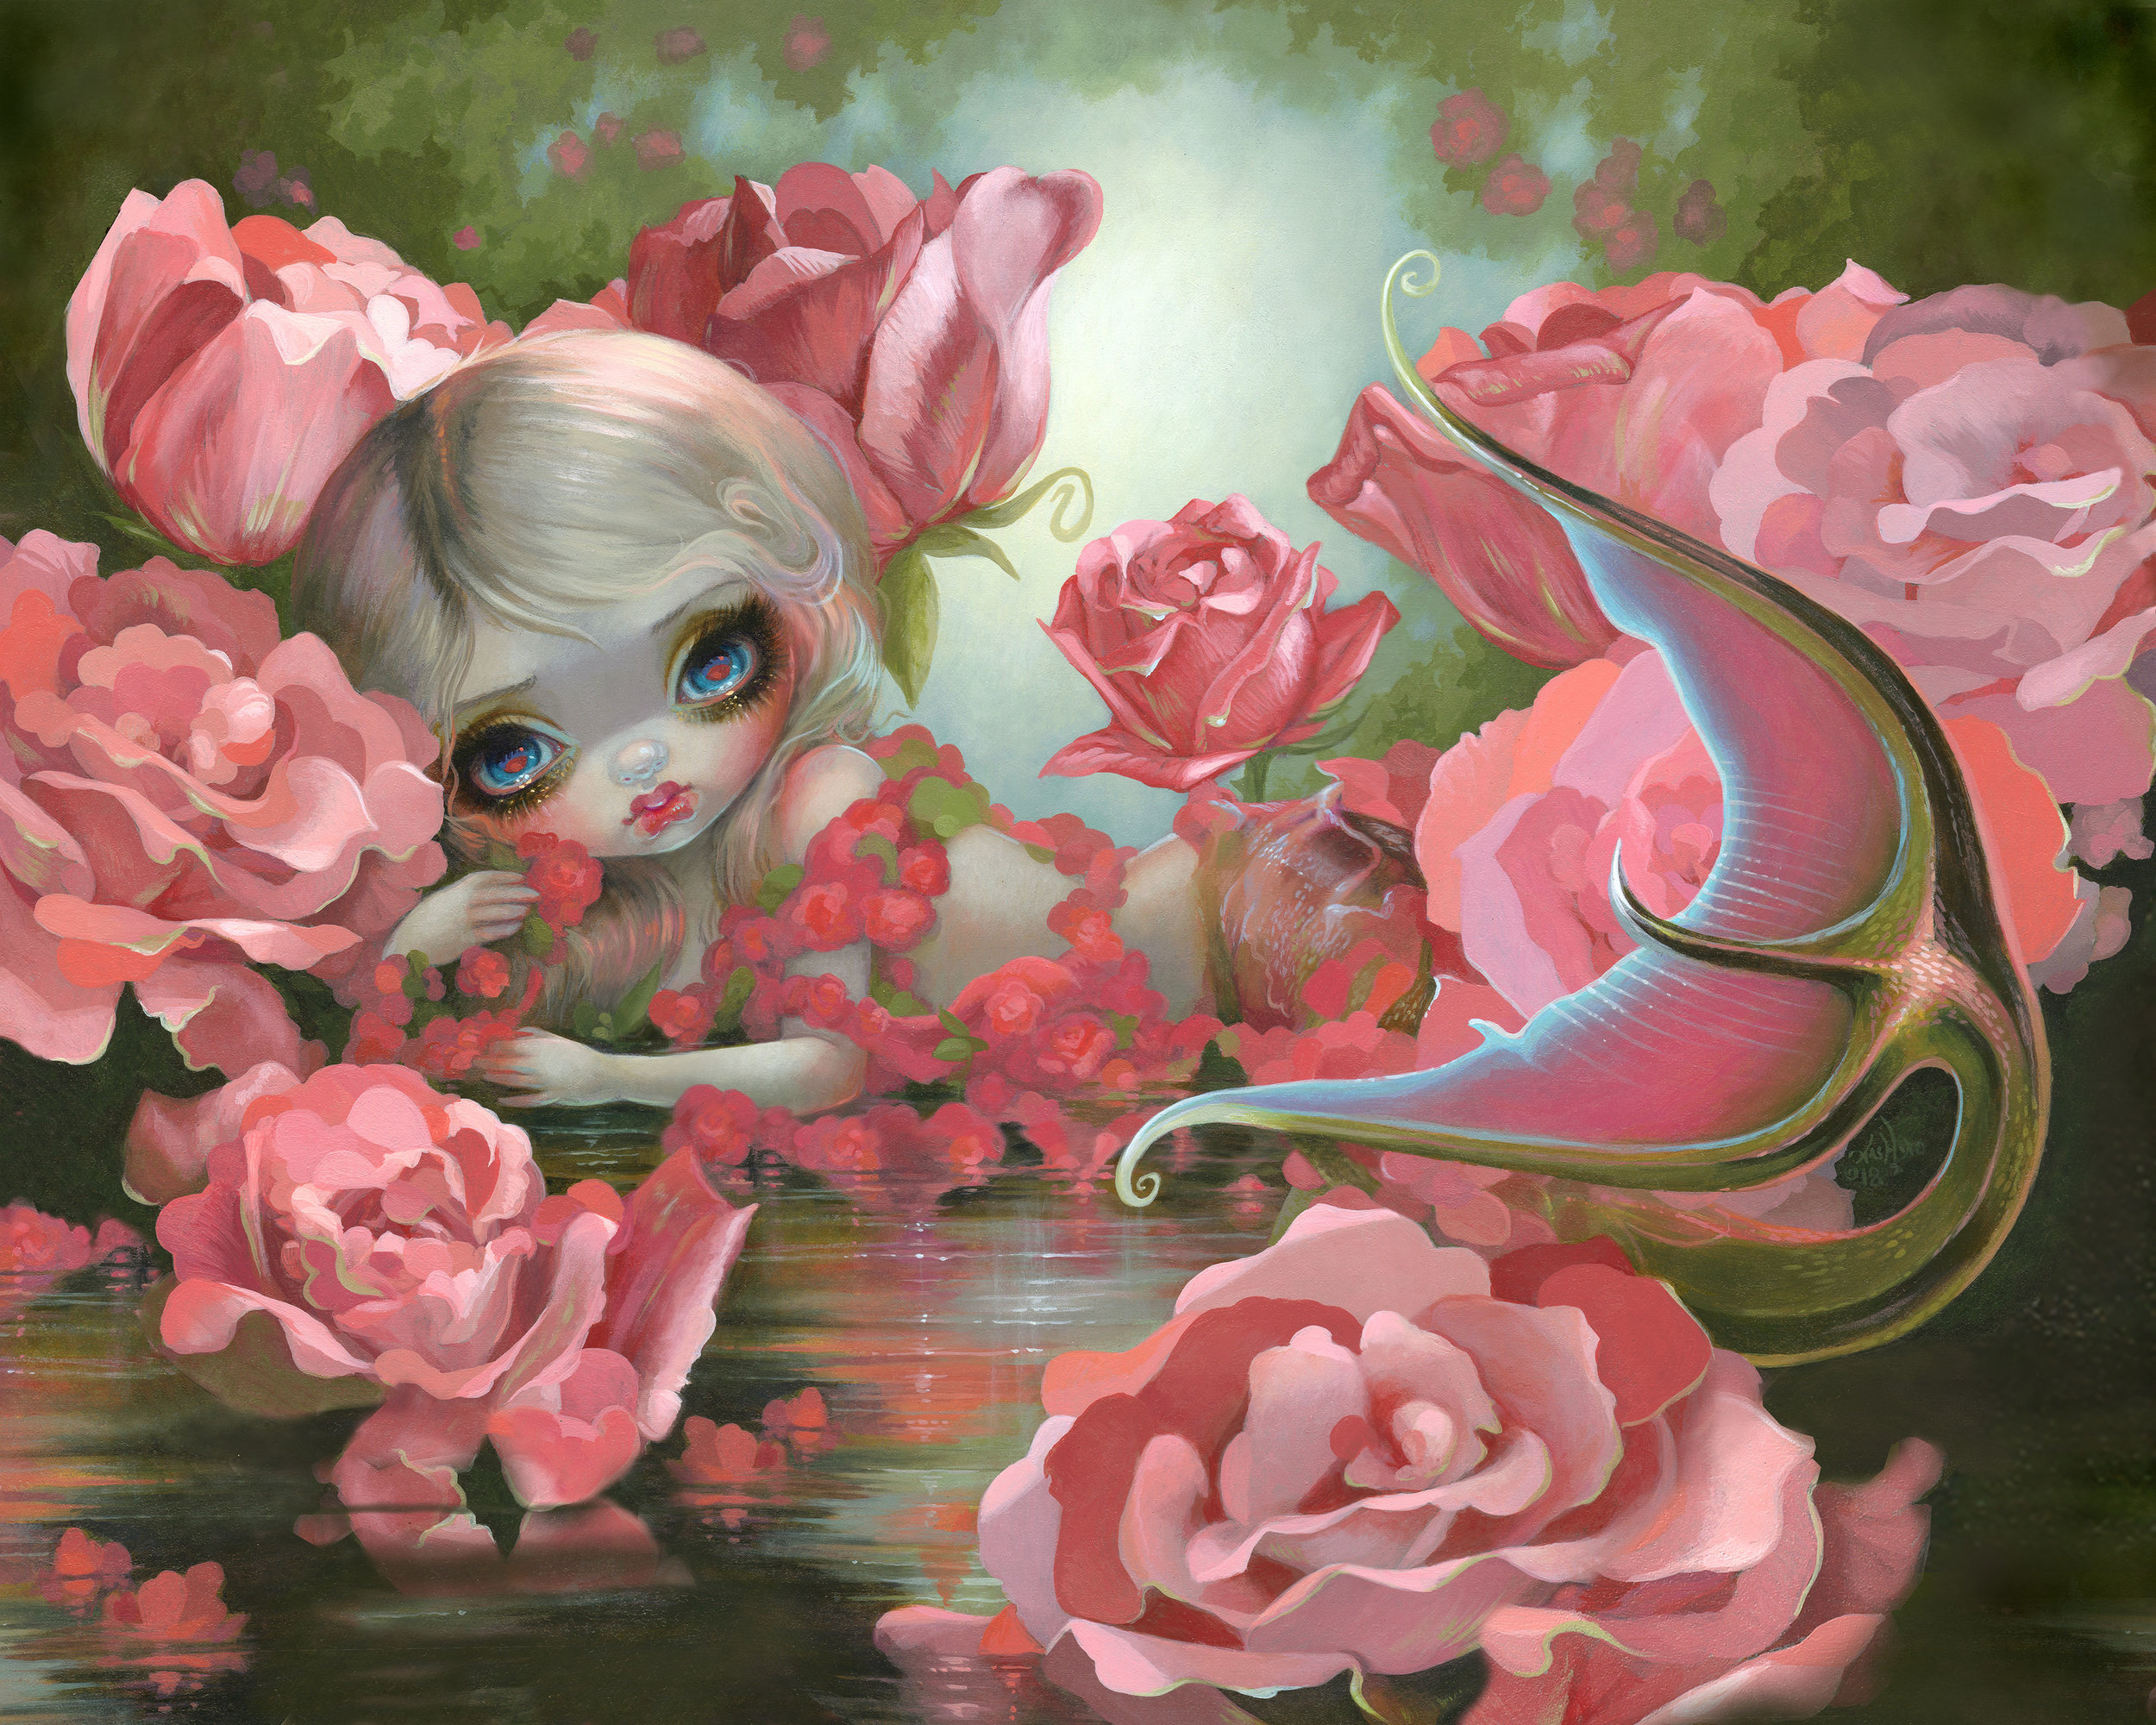 Mermaid With Rose.jpg